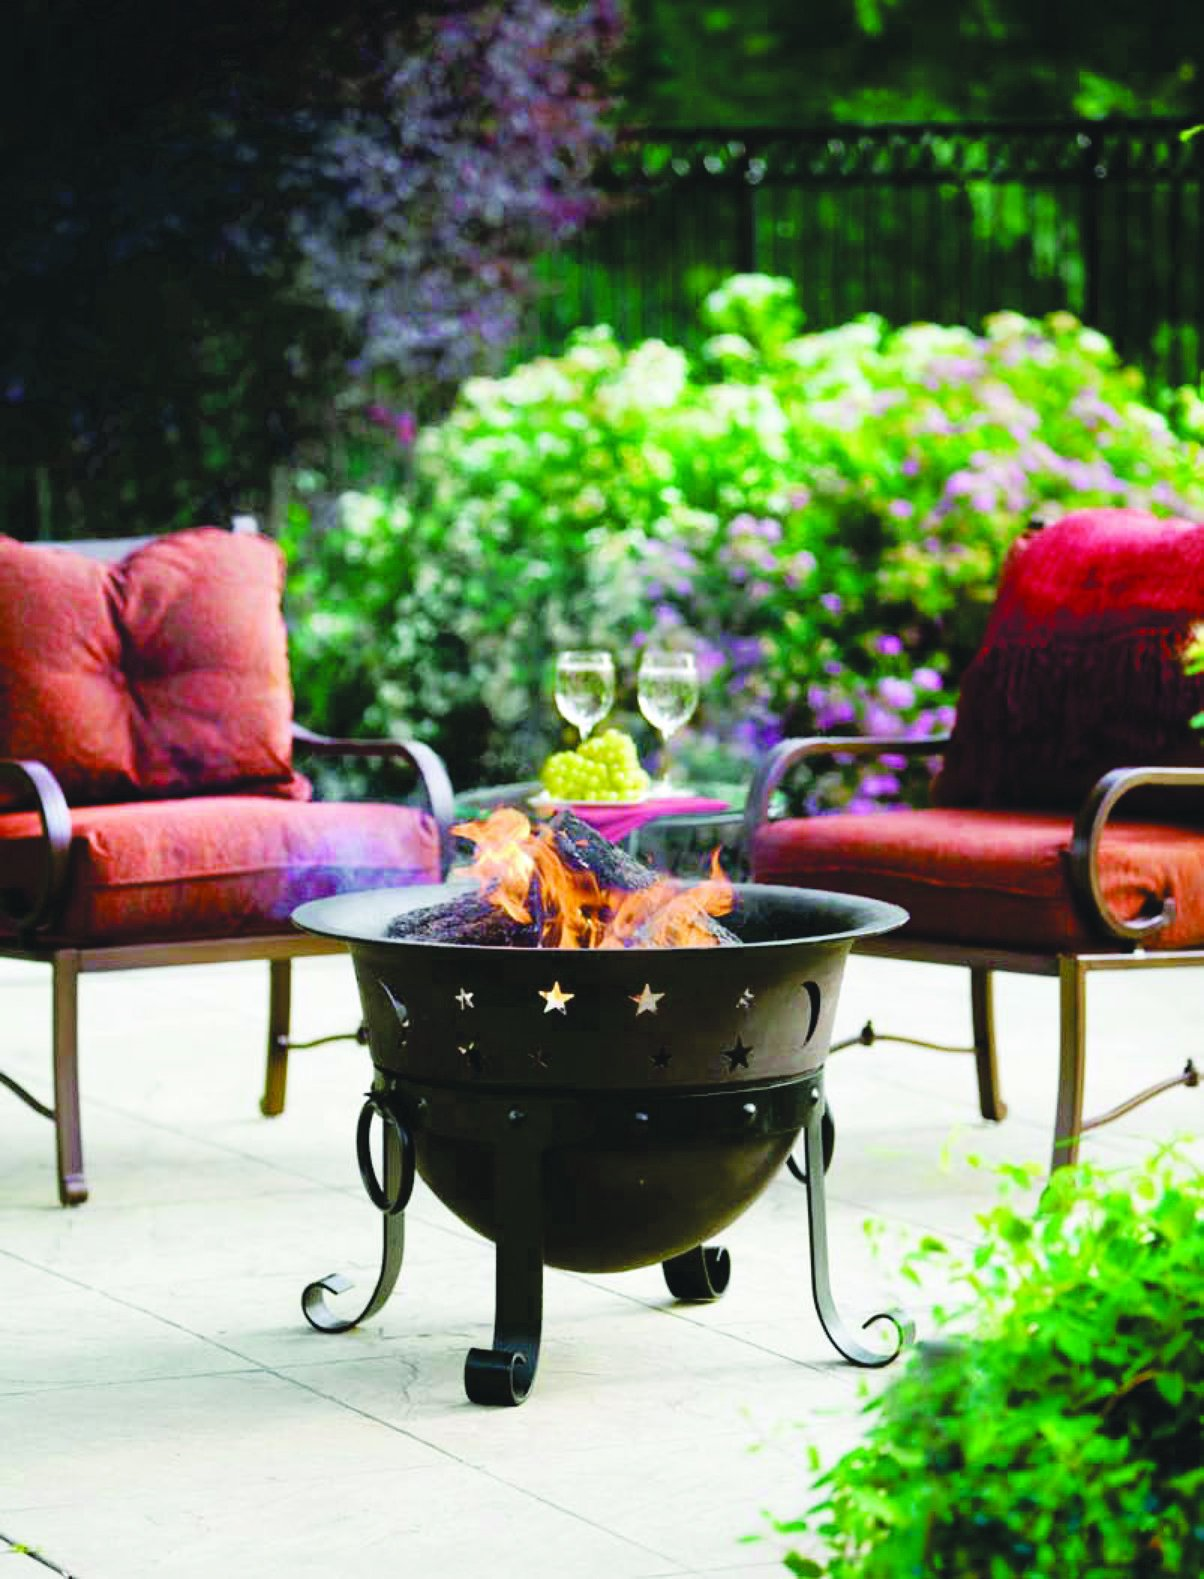 Catalina Creations Heavy Duty Cast Iron Fire Pit with Cover and Accessories, 29''